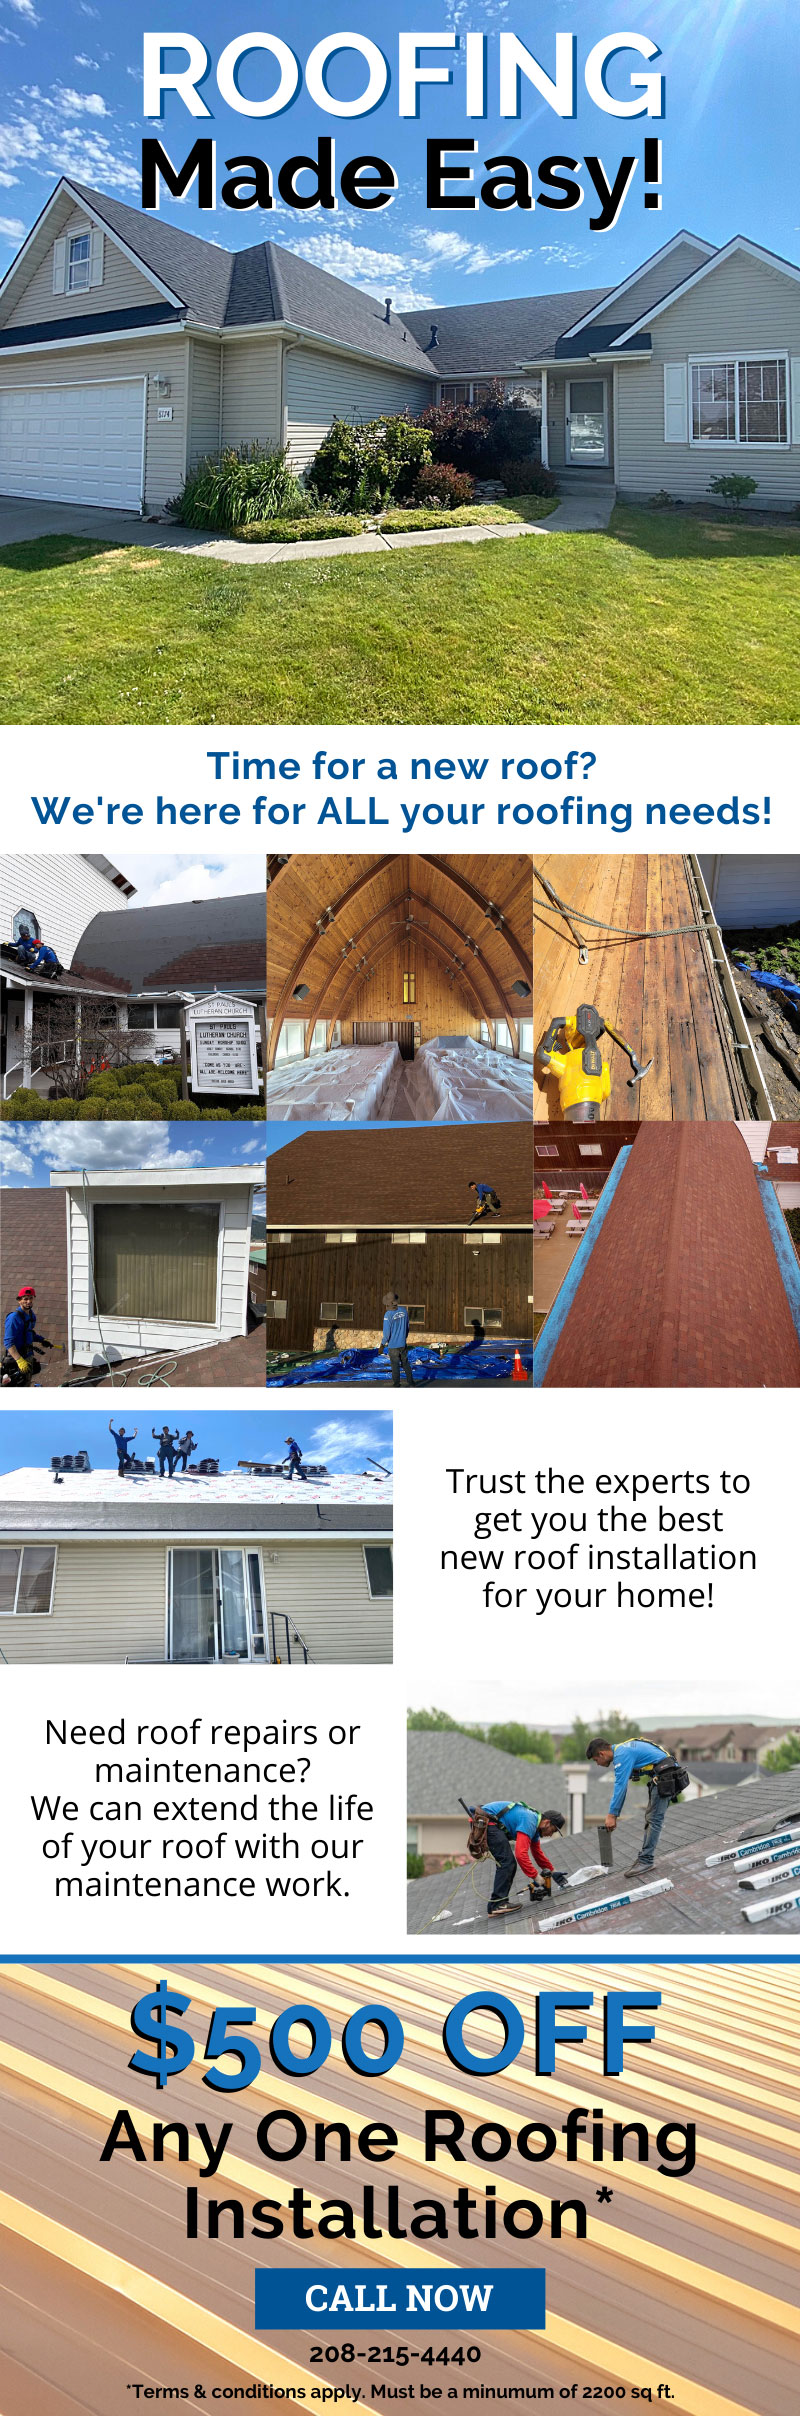 Roofing Made Easy! 3